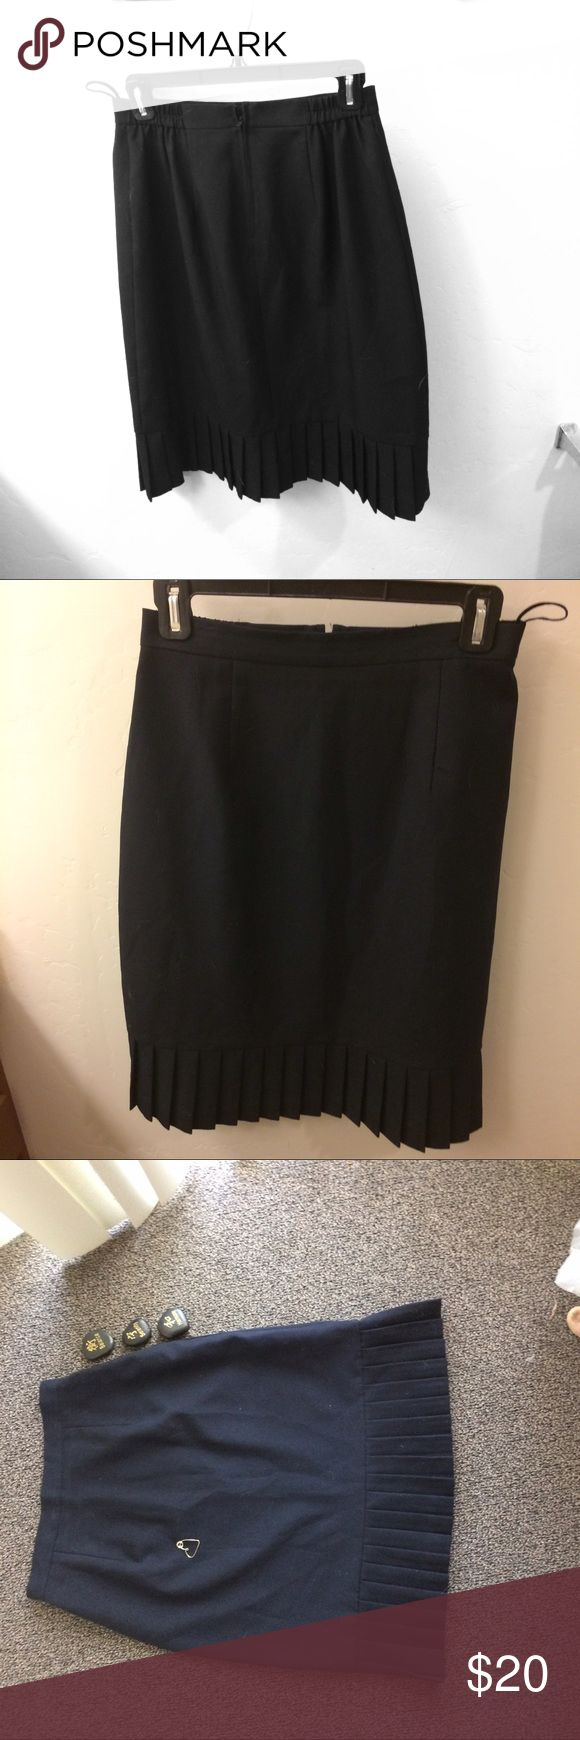 "Nordstrom brand skirt. Black Aline with 4.75 pleat Nordstrom brand skirt . Black Aline with 4.75 "" pleats at the bottom of the skirt. Size 8. Daughter wore 2x for speech and debate competition. 100% polyester. Made in Vietnam. Excellent condition. Nordstrom Skirts A-Line or Full"